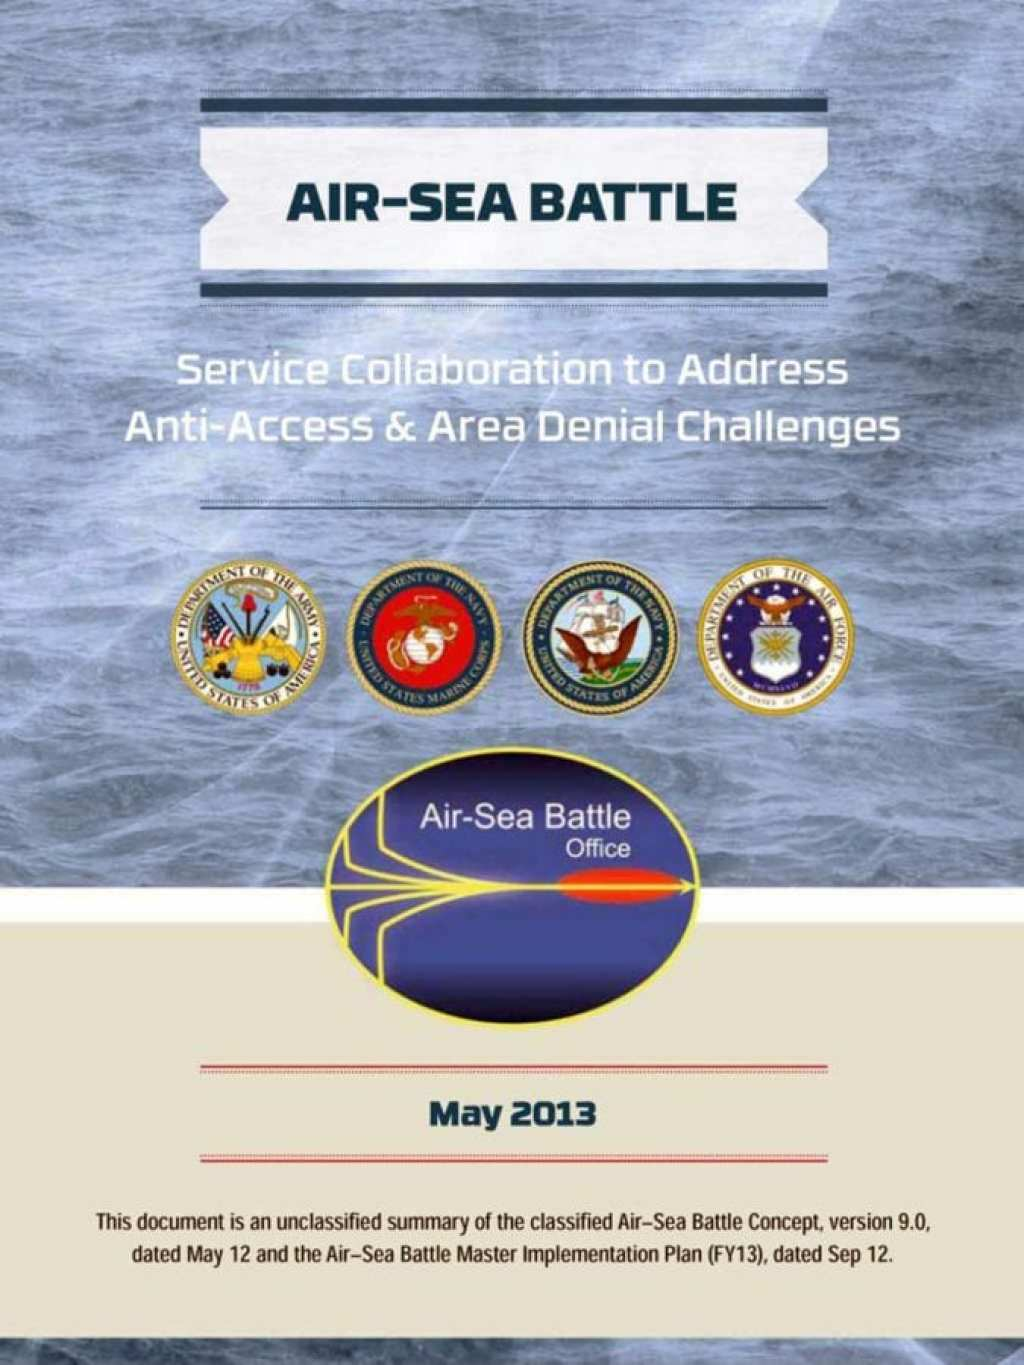 Air-Sea Battle: Service Collaboration to Address Anti-Access & Area Denial Challenges